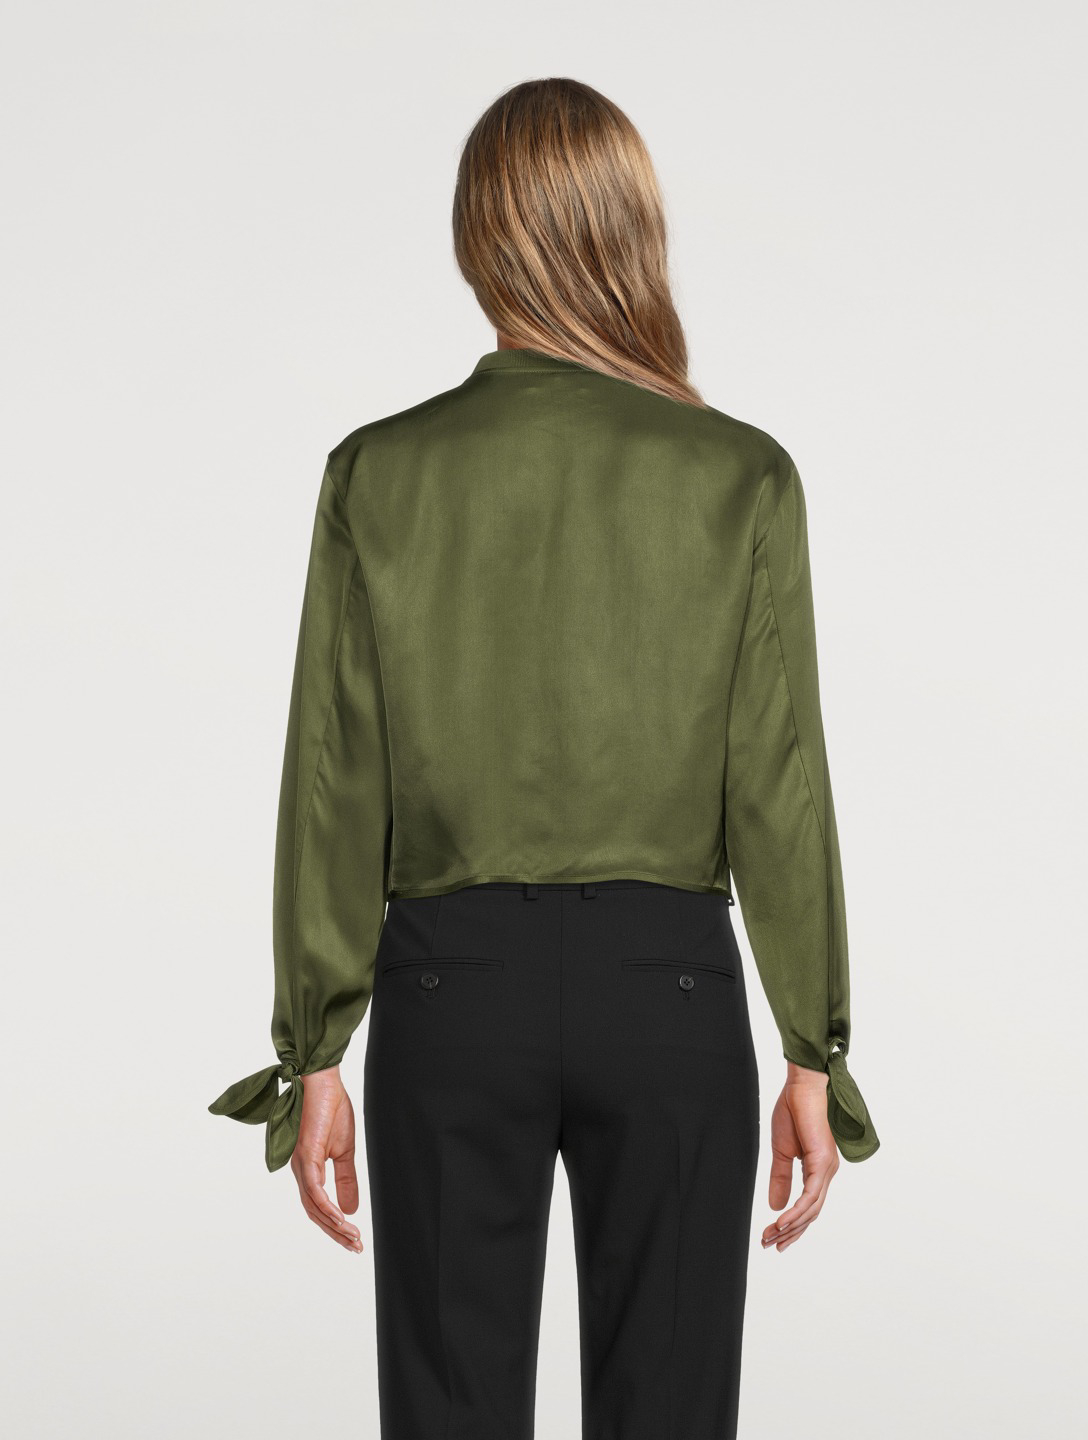 THEORY Viscose Twill Tied-Sleeve Bomber Jacket Women's Green